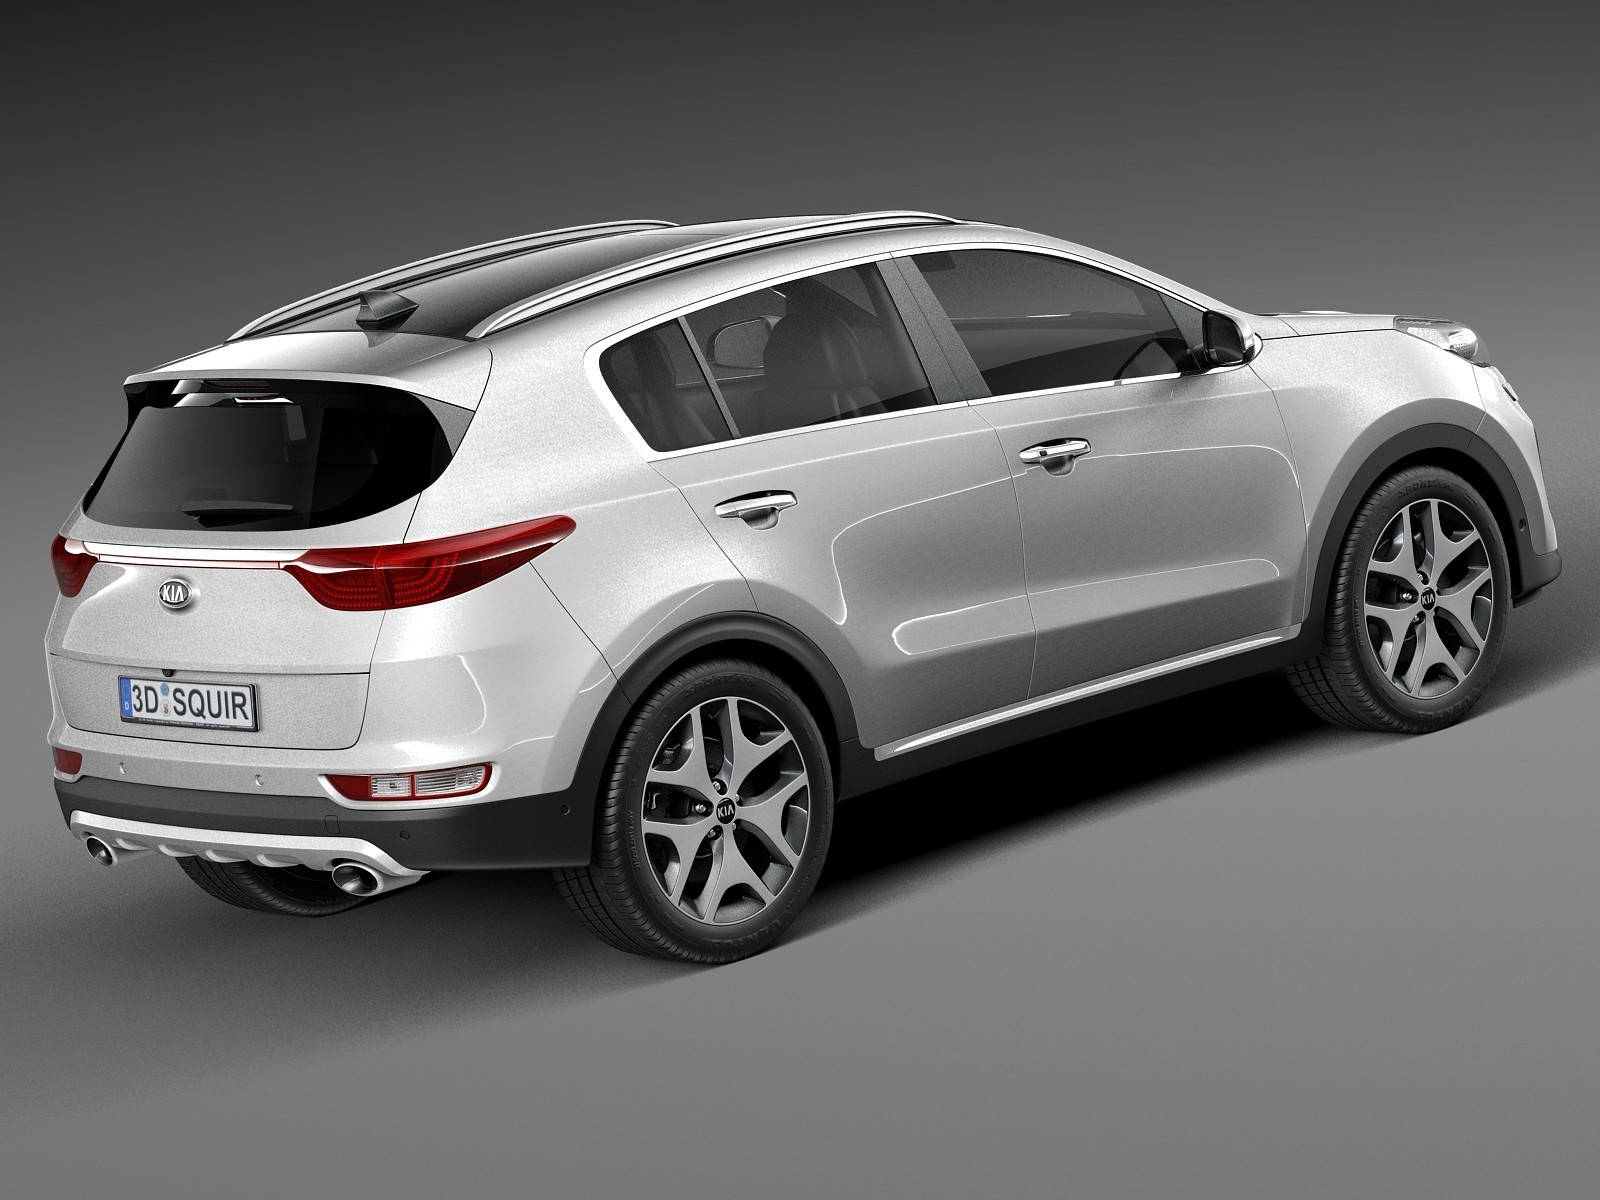 all new 2016 kia sportage leaked renderings makes us pakistanis miss it pakwheels blog. Black Bedroom Furniture Sets. Home Design Ideas